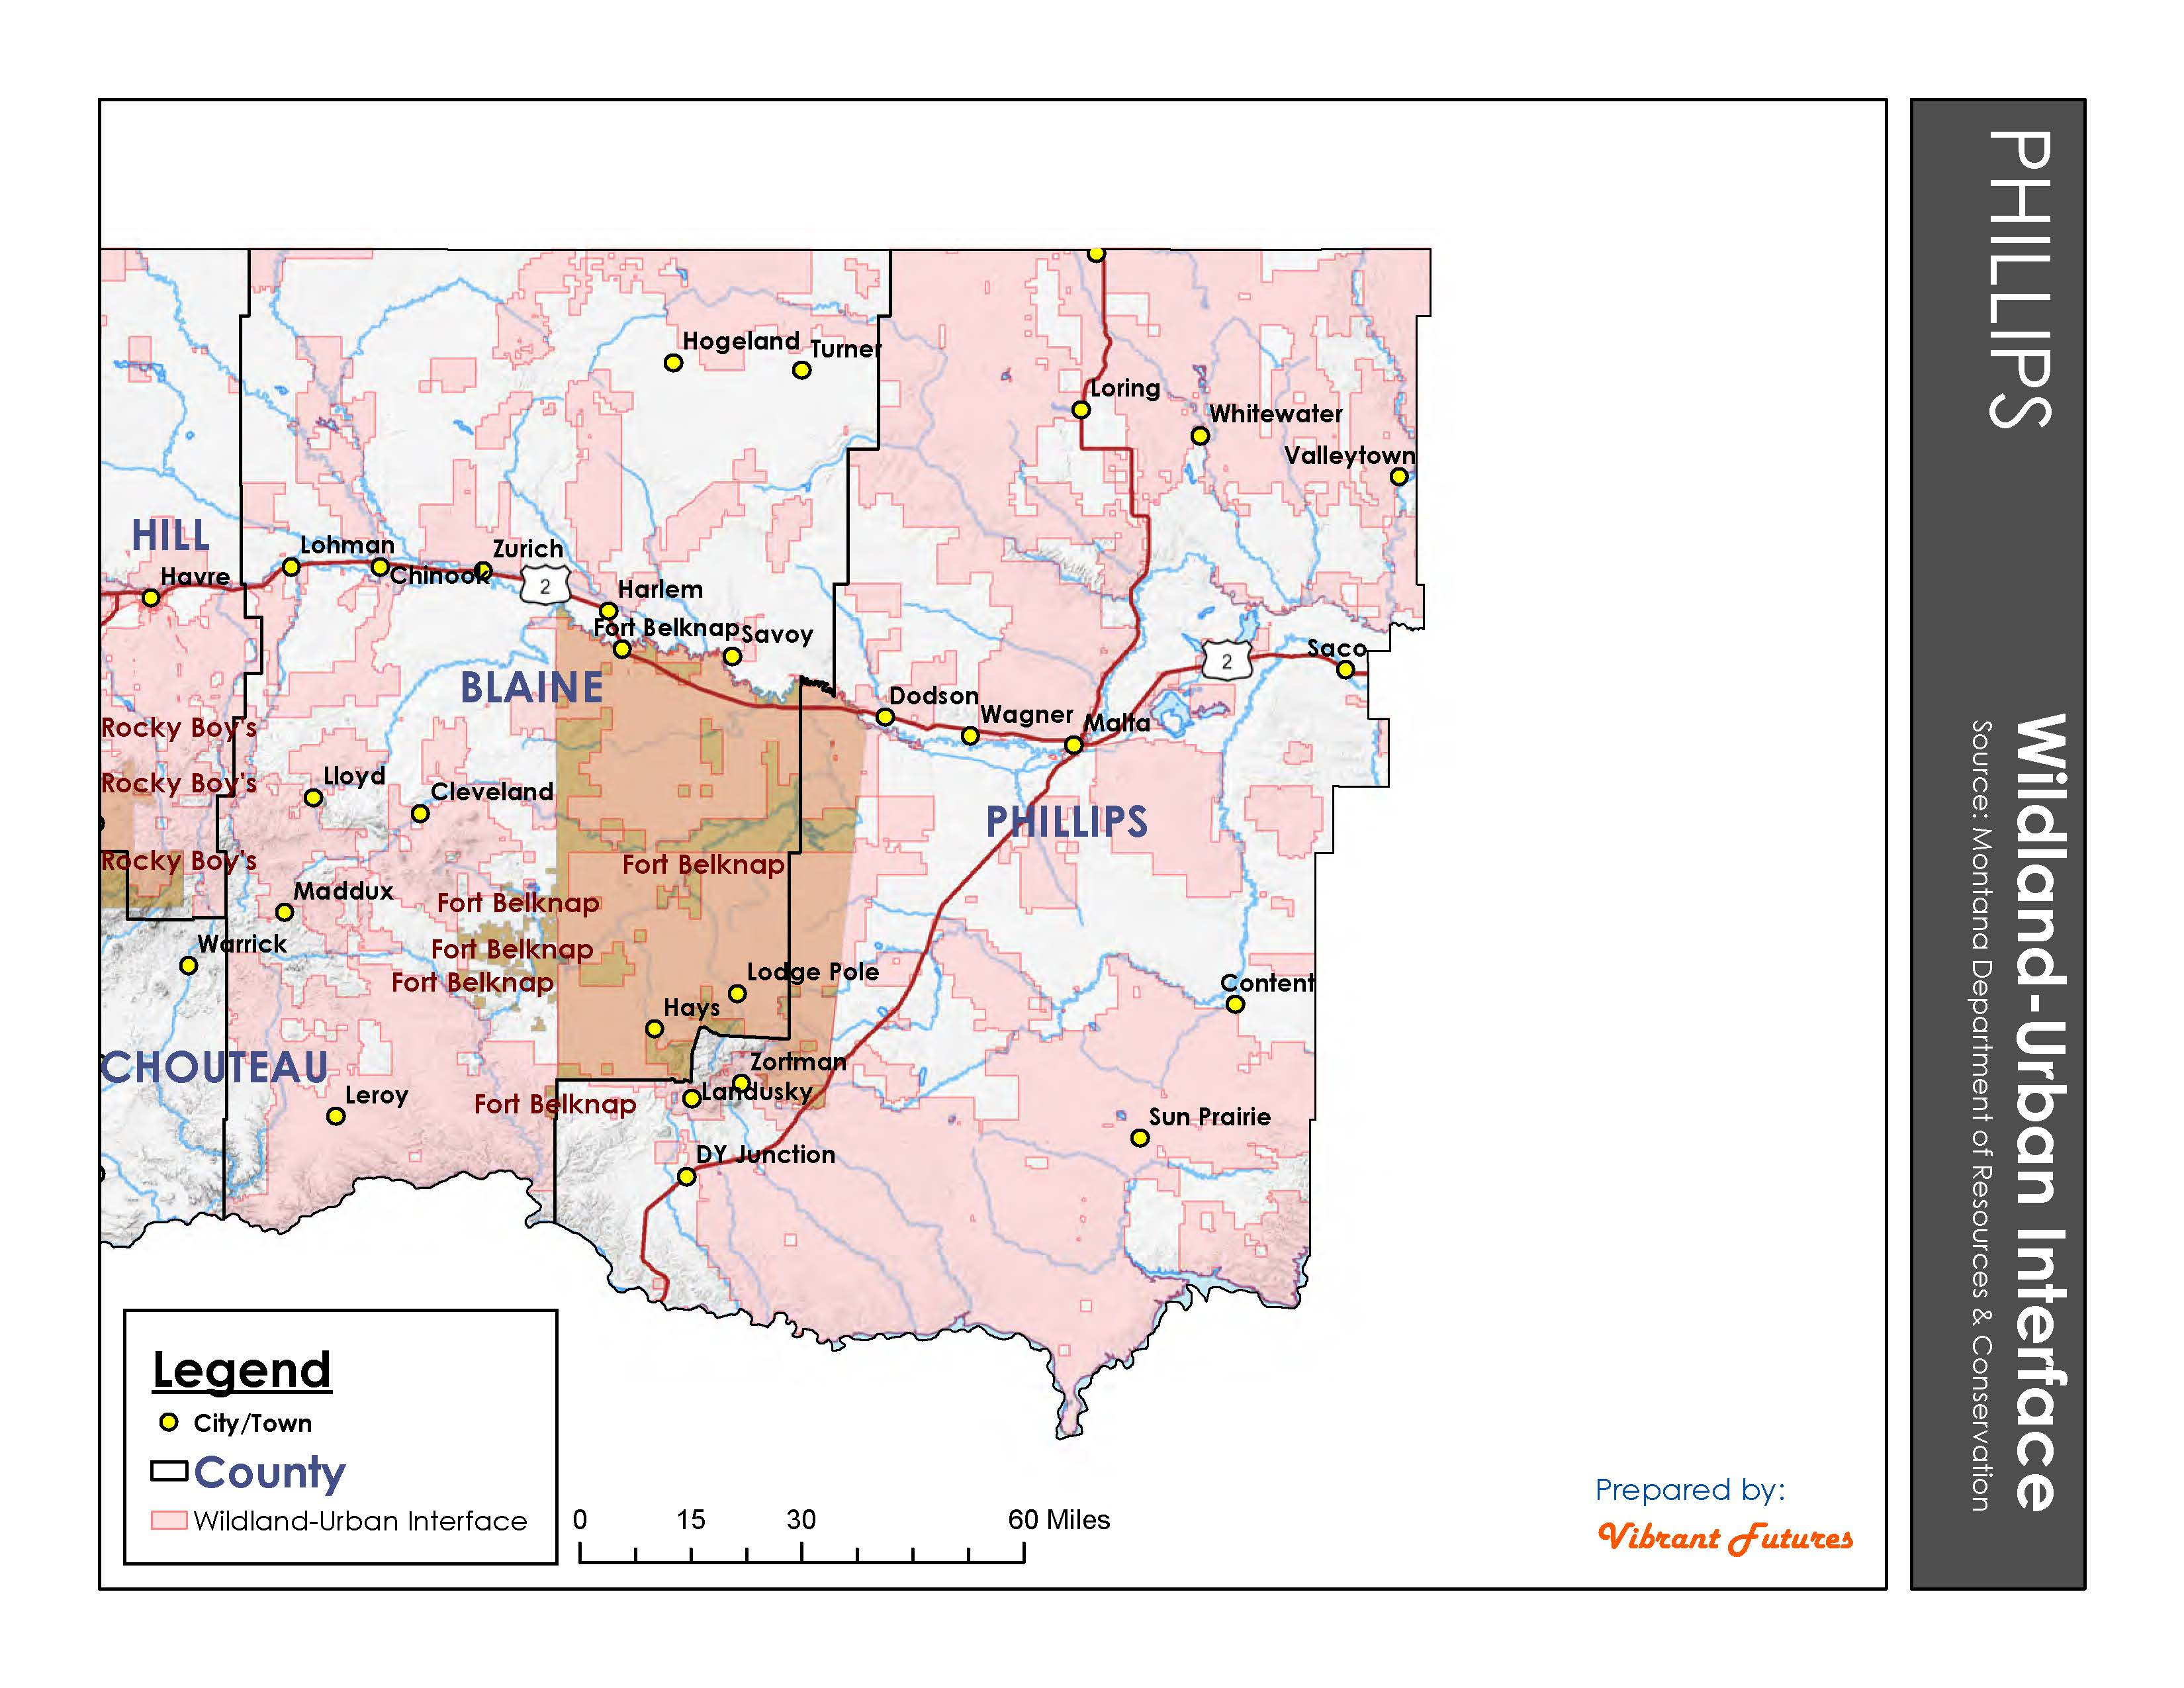 Montana blaine county hays - Wildland Urban Interface Phillips County